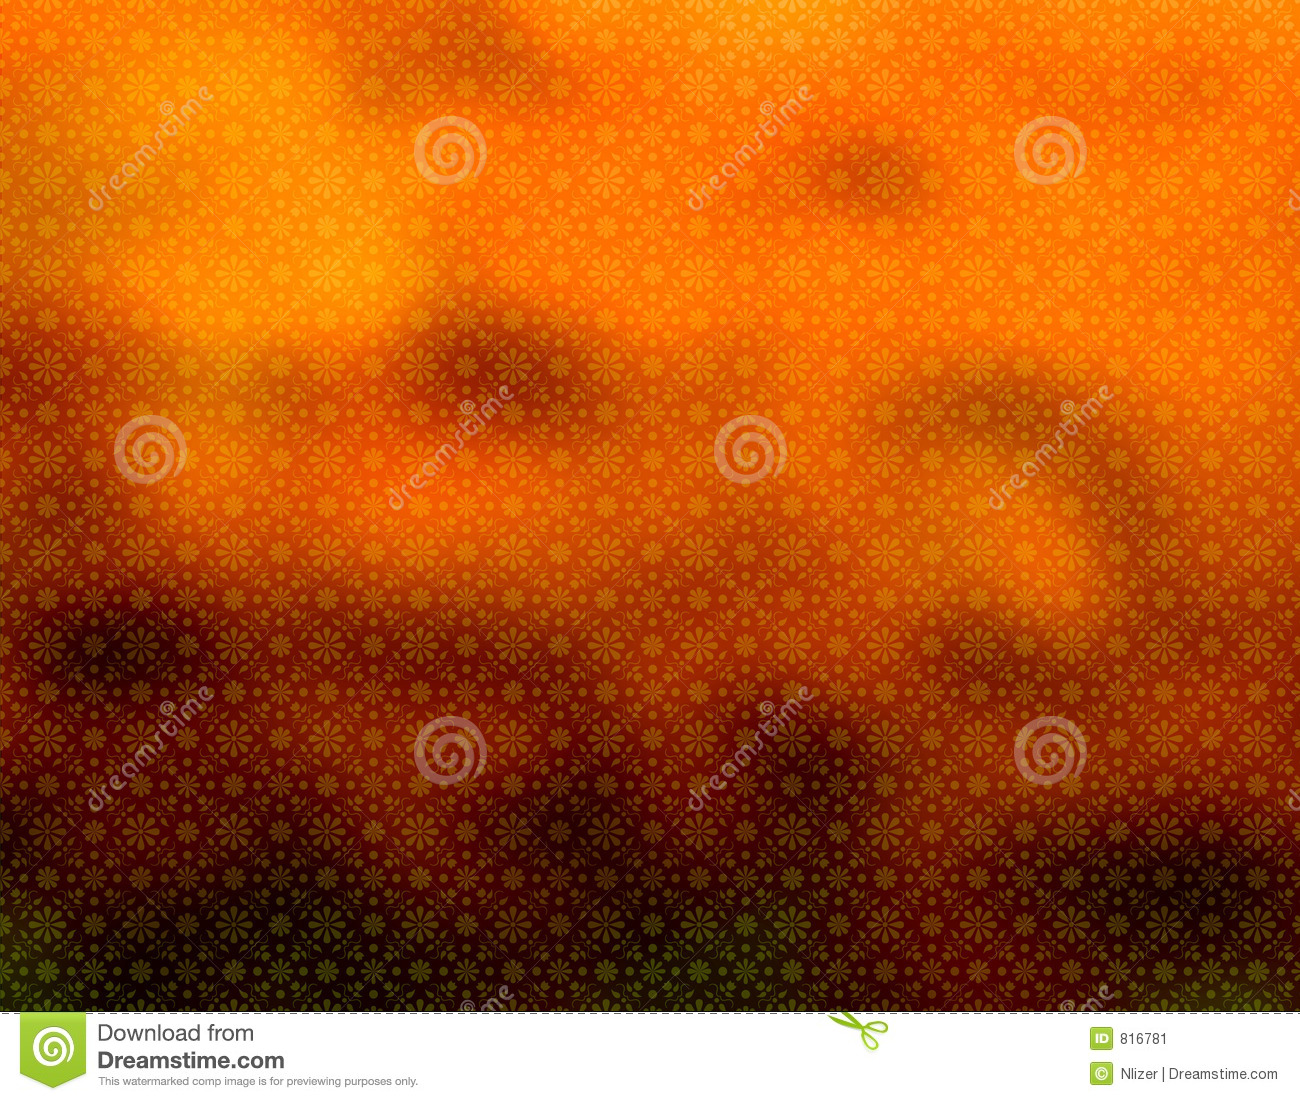 brown geometric background wallpaper stock image